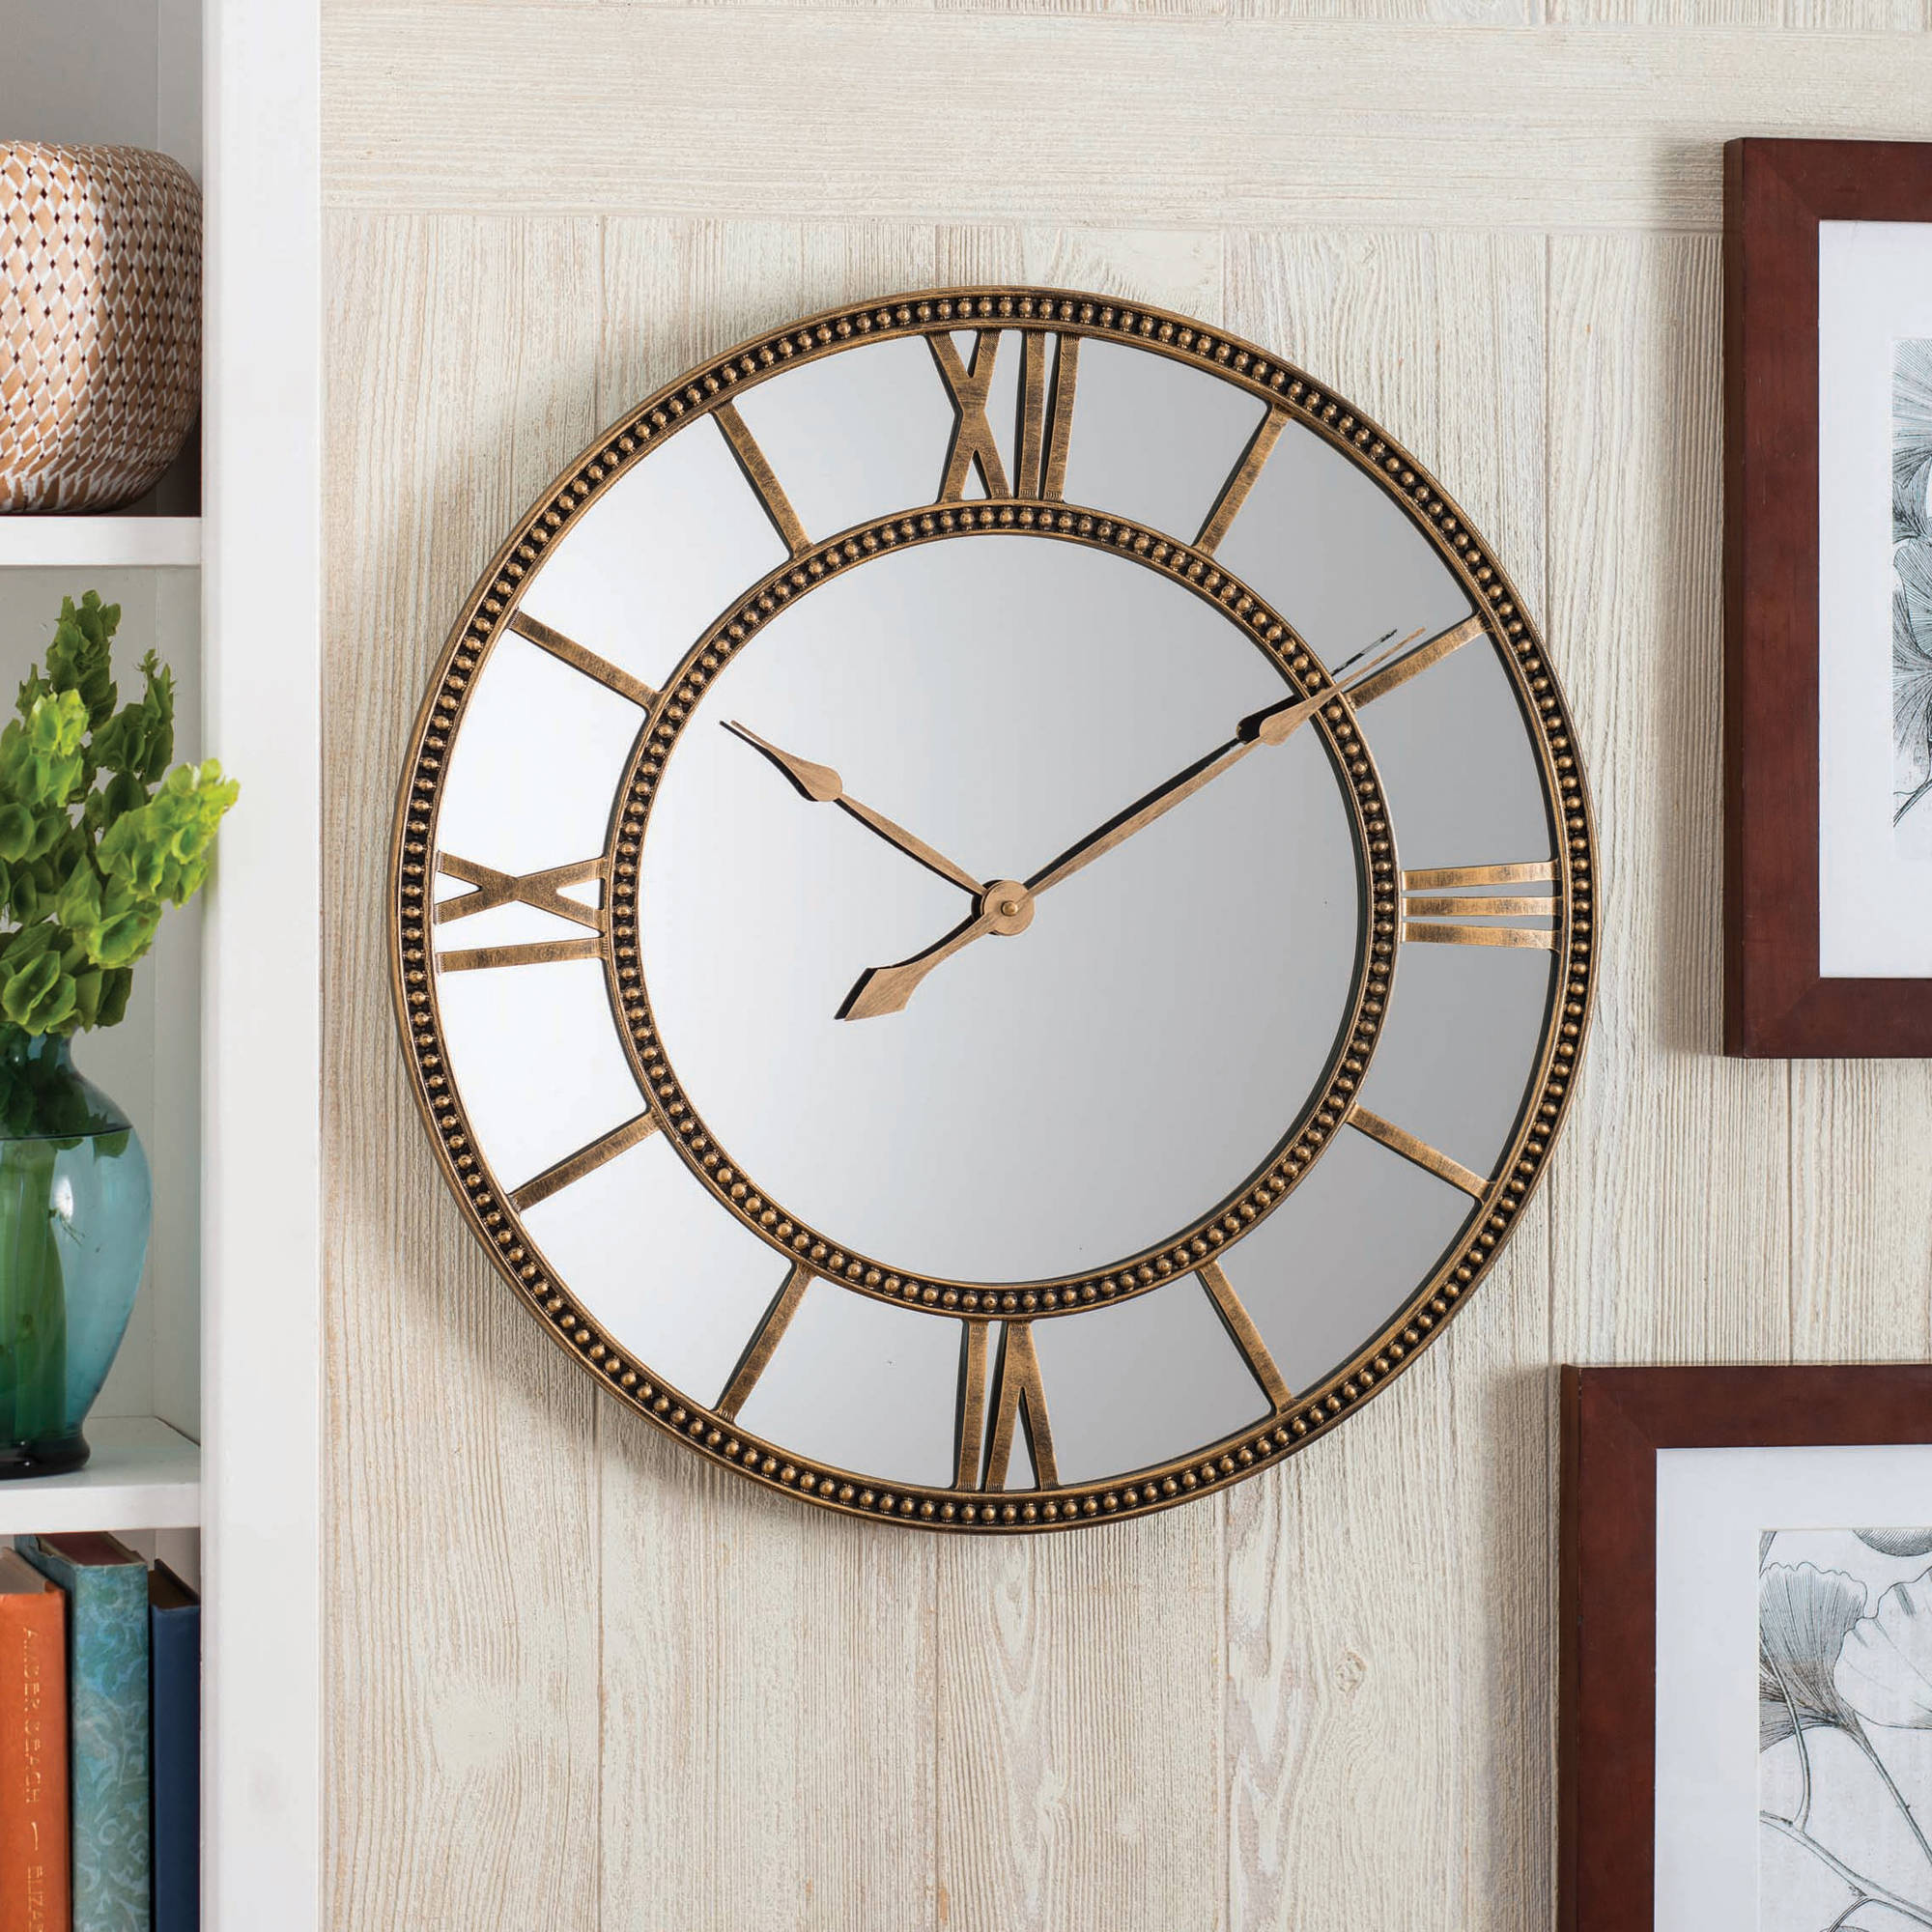 Better Homes and Gardens Mirror Clock, Distressed Gold